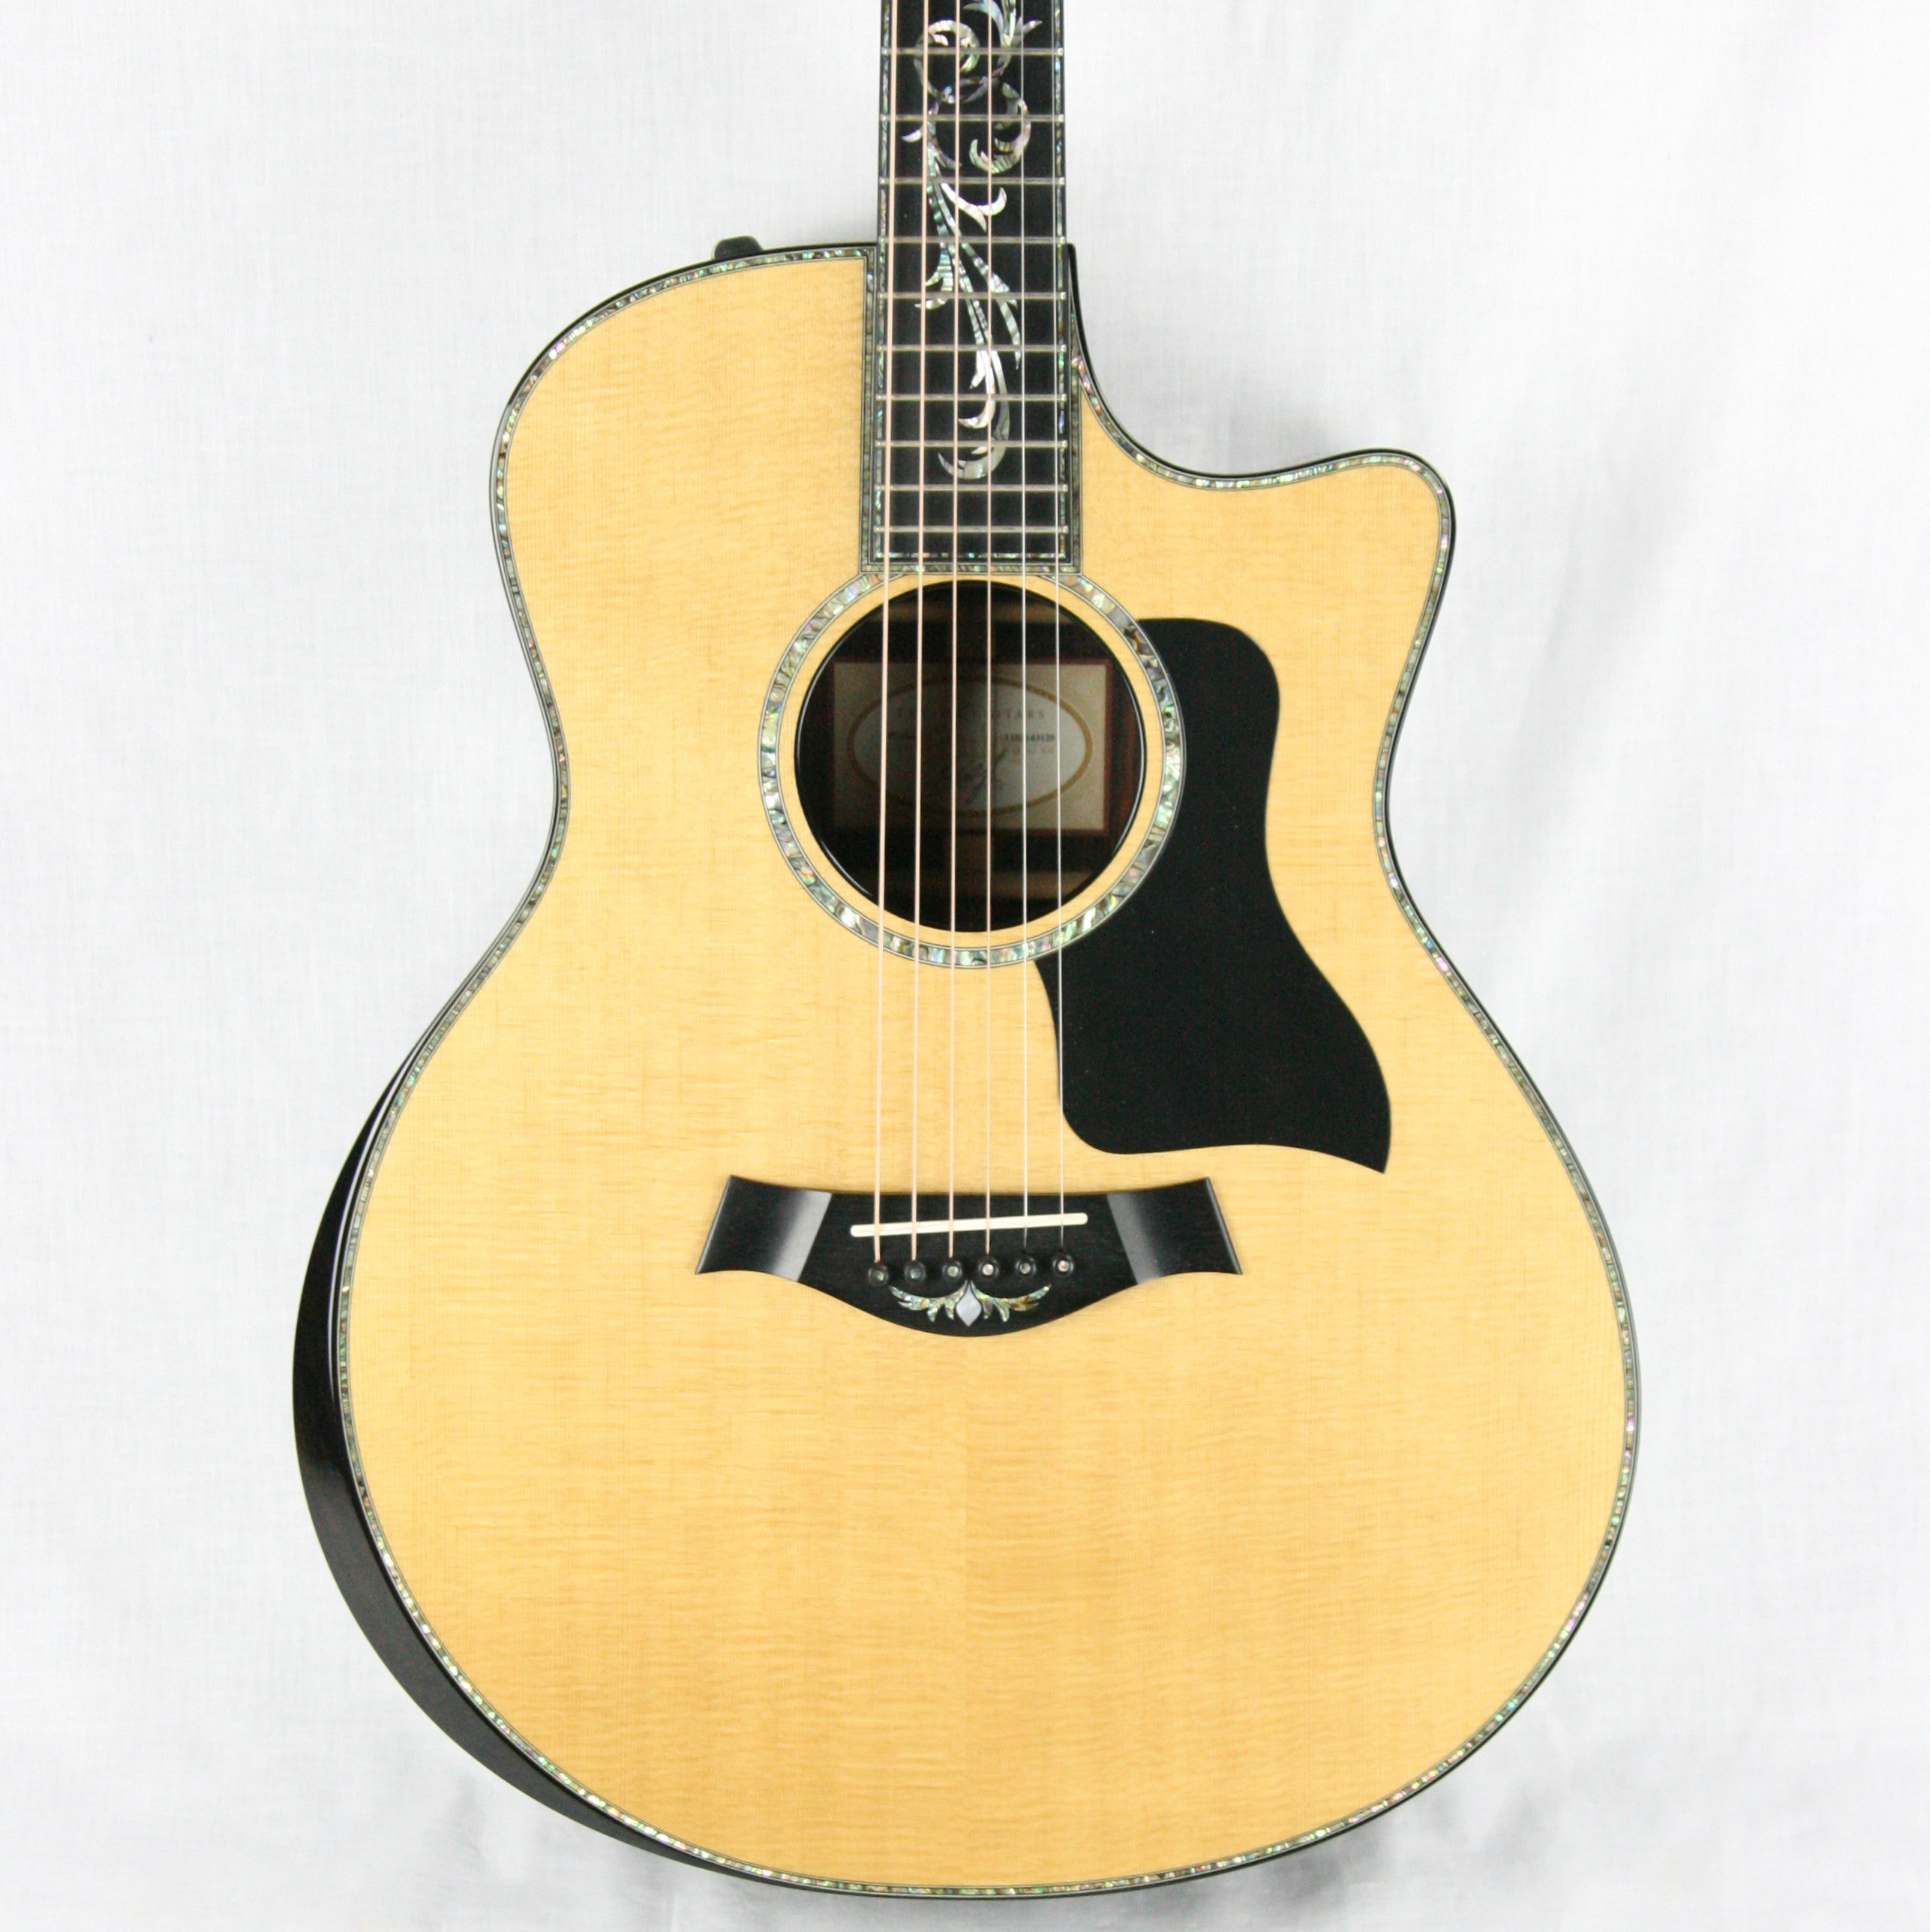 2013 Taylor PS 16CE Grand Symphony Presentation Series COCOBOLO & SITKA! Acoustic Guitar 916 914 PS